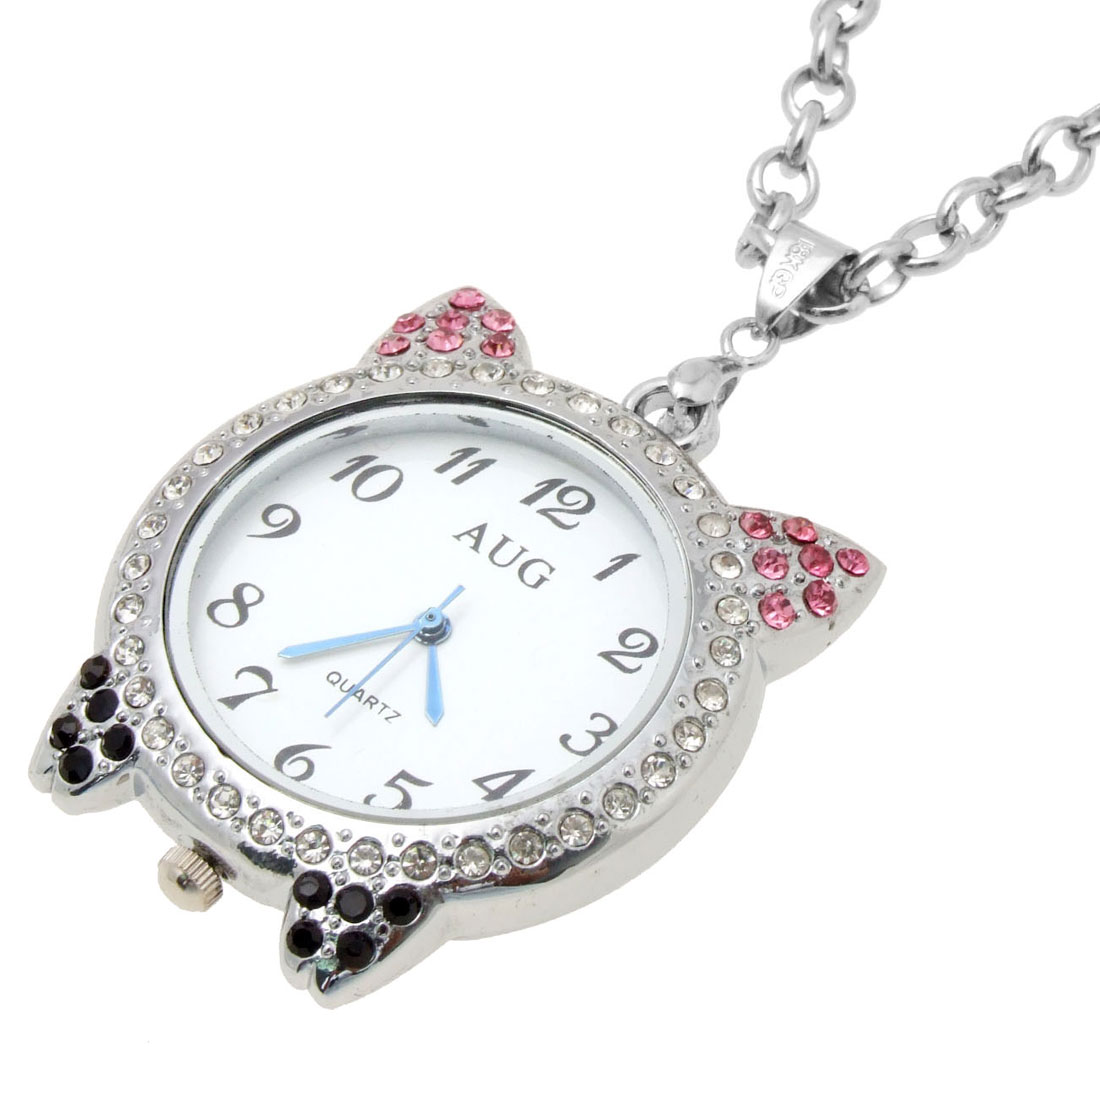 Fashion Jewelry Elegance Necklace Flier Piggy w.Crystal Pendant Quartz Watch